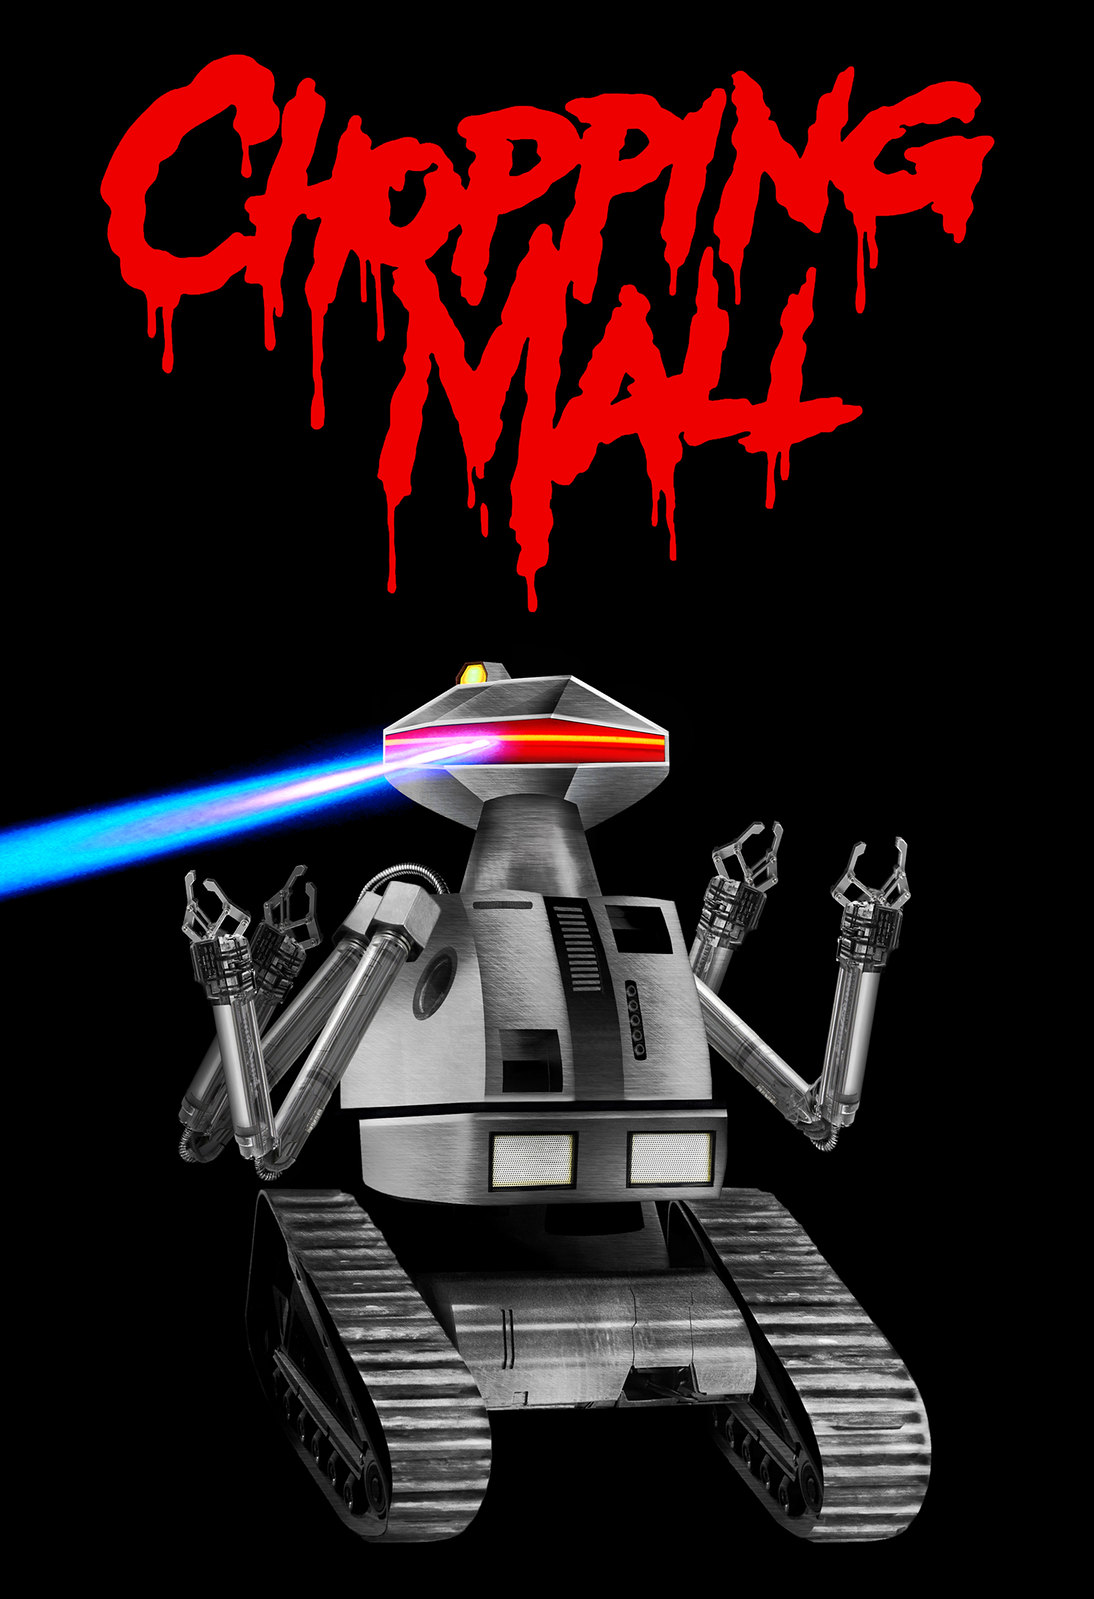 AERON ALFREY - CHOPPING MALL POSTER